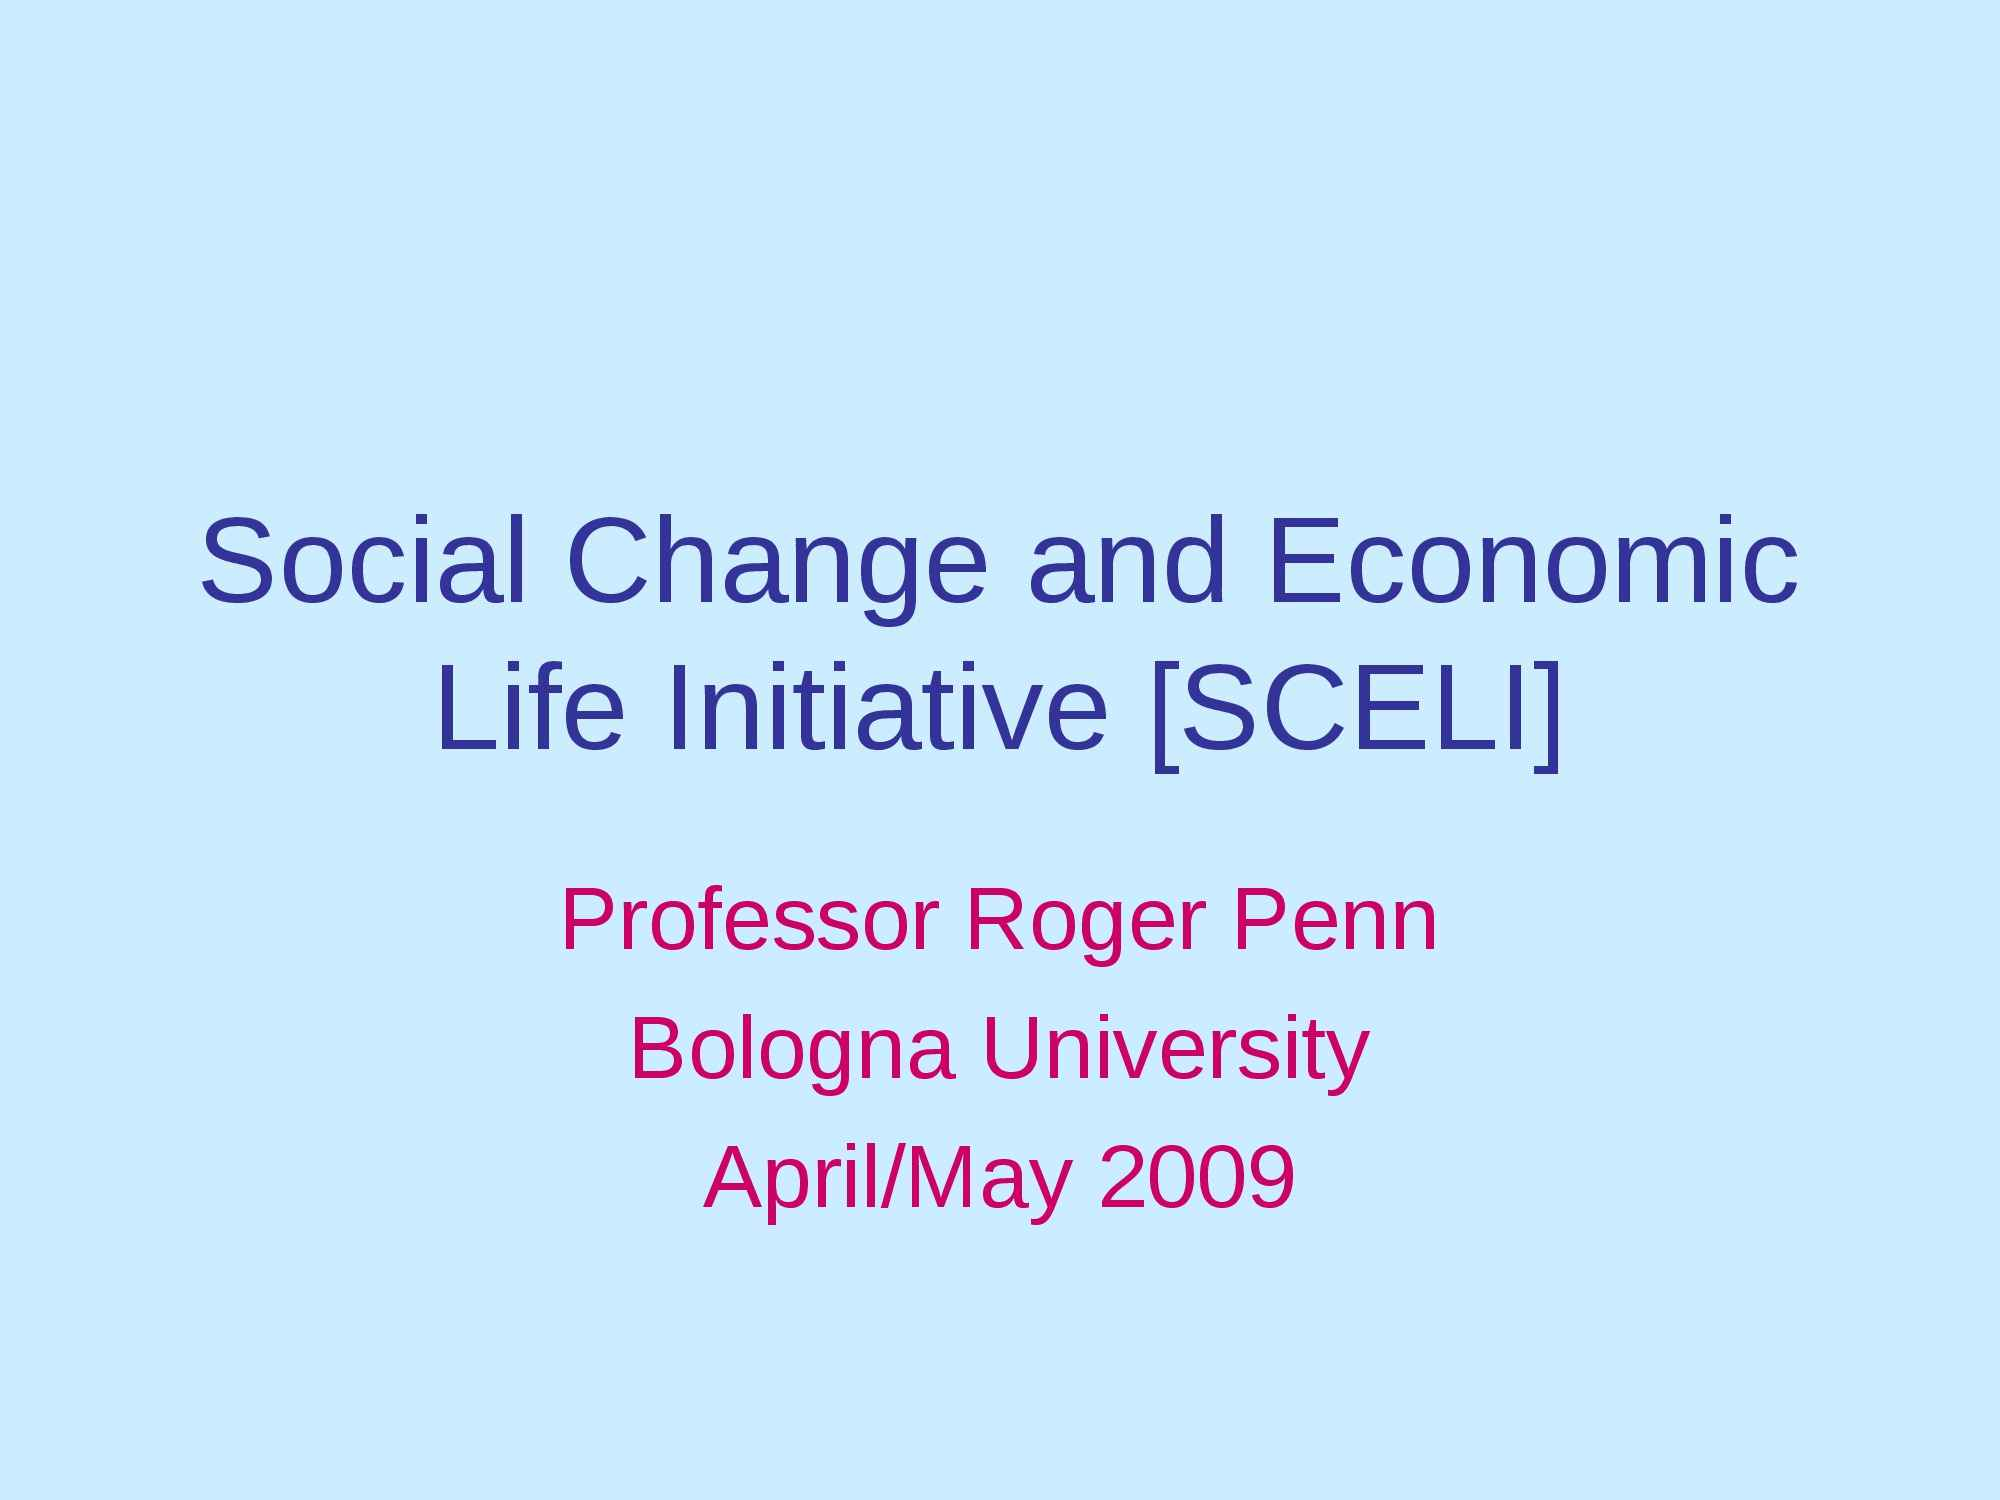 Social Change and Economic Life Initiative